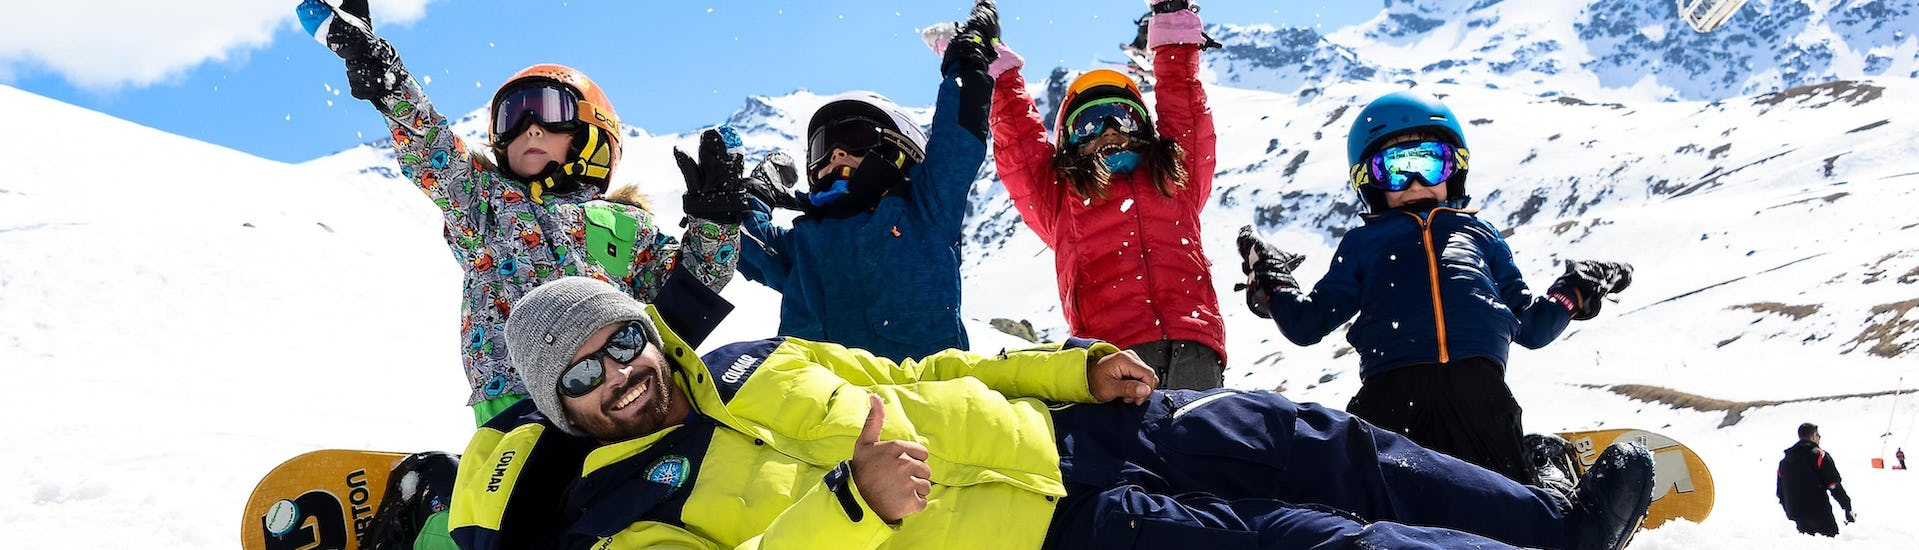 Little snowboarders are learning how to snowboard in Snowboarding Lessons for Kids - All Levels while having fun with an instructor from the ski school Prosneige Val d'Isère.